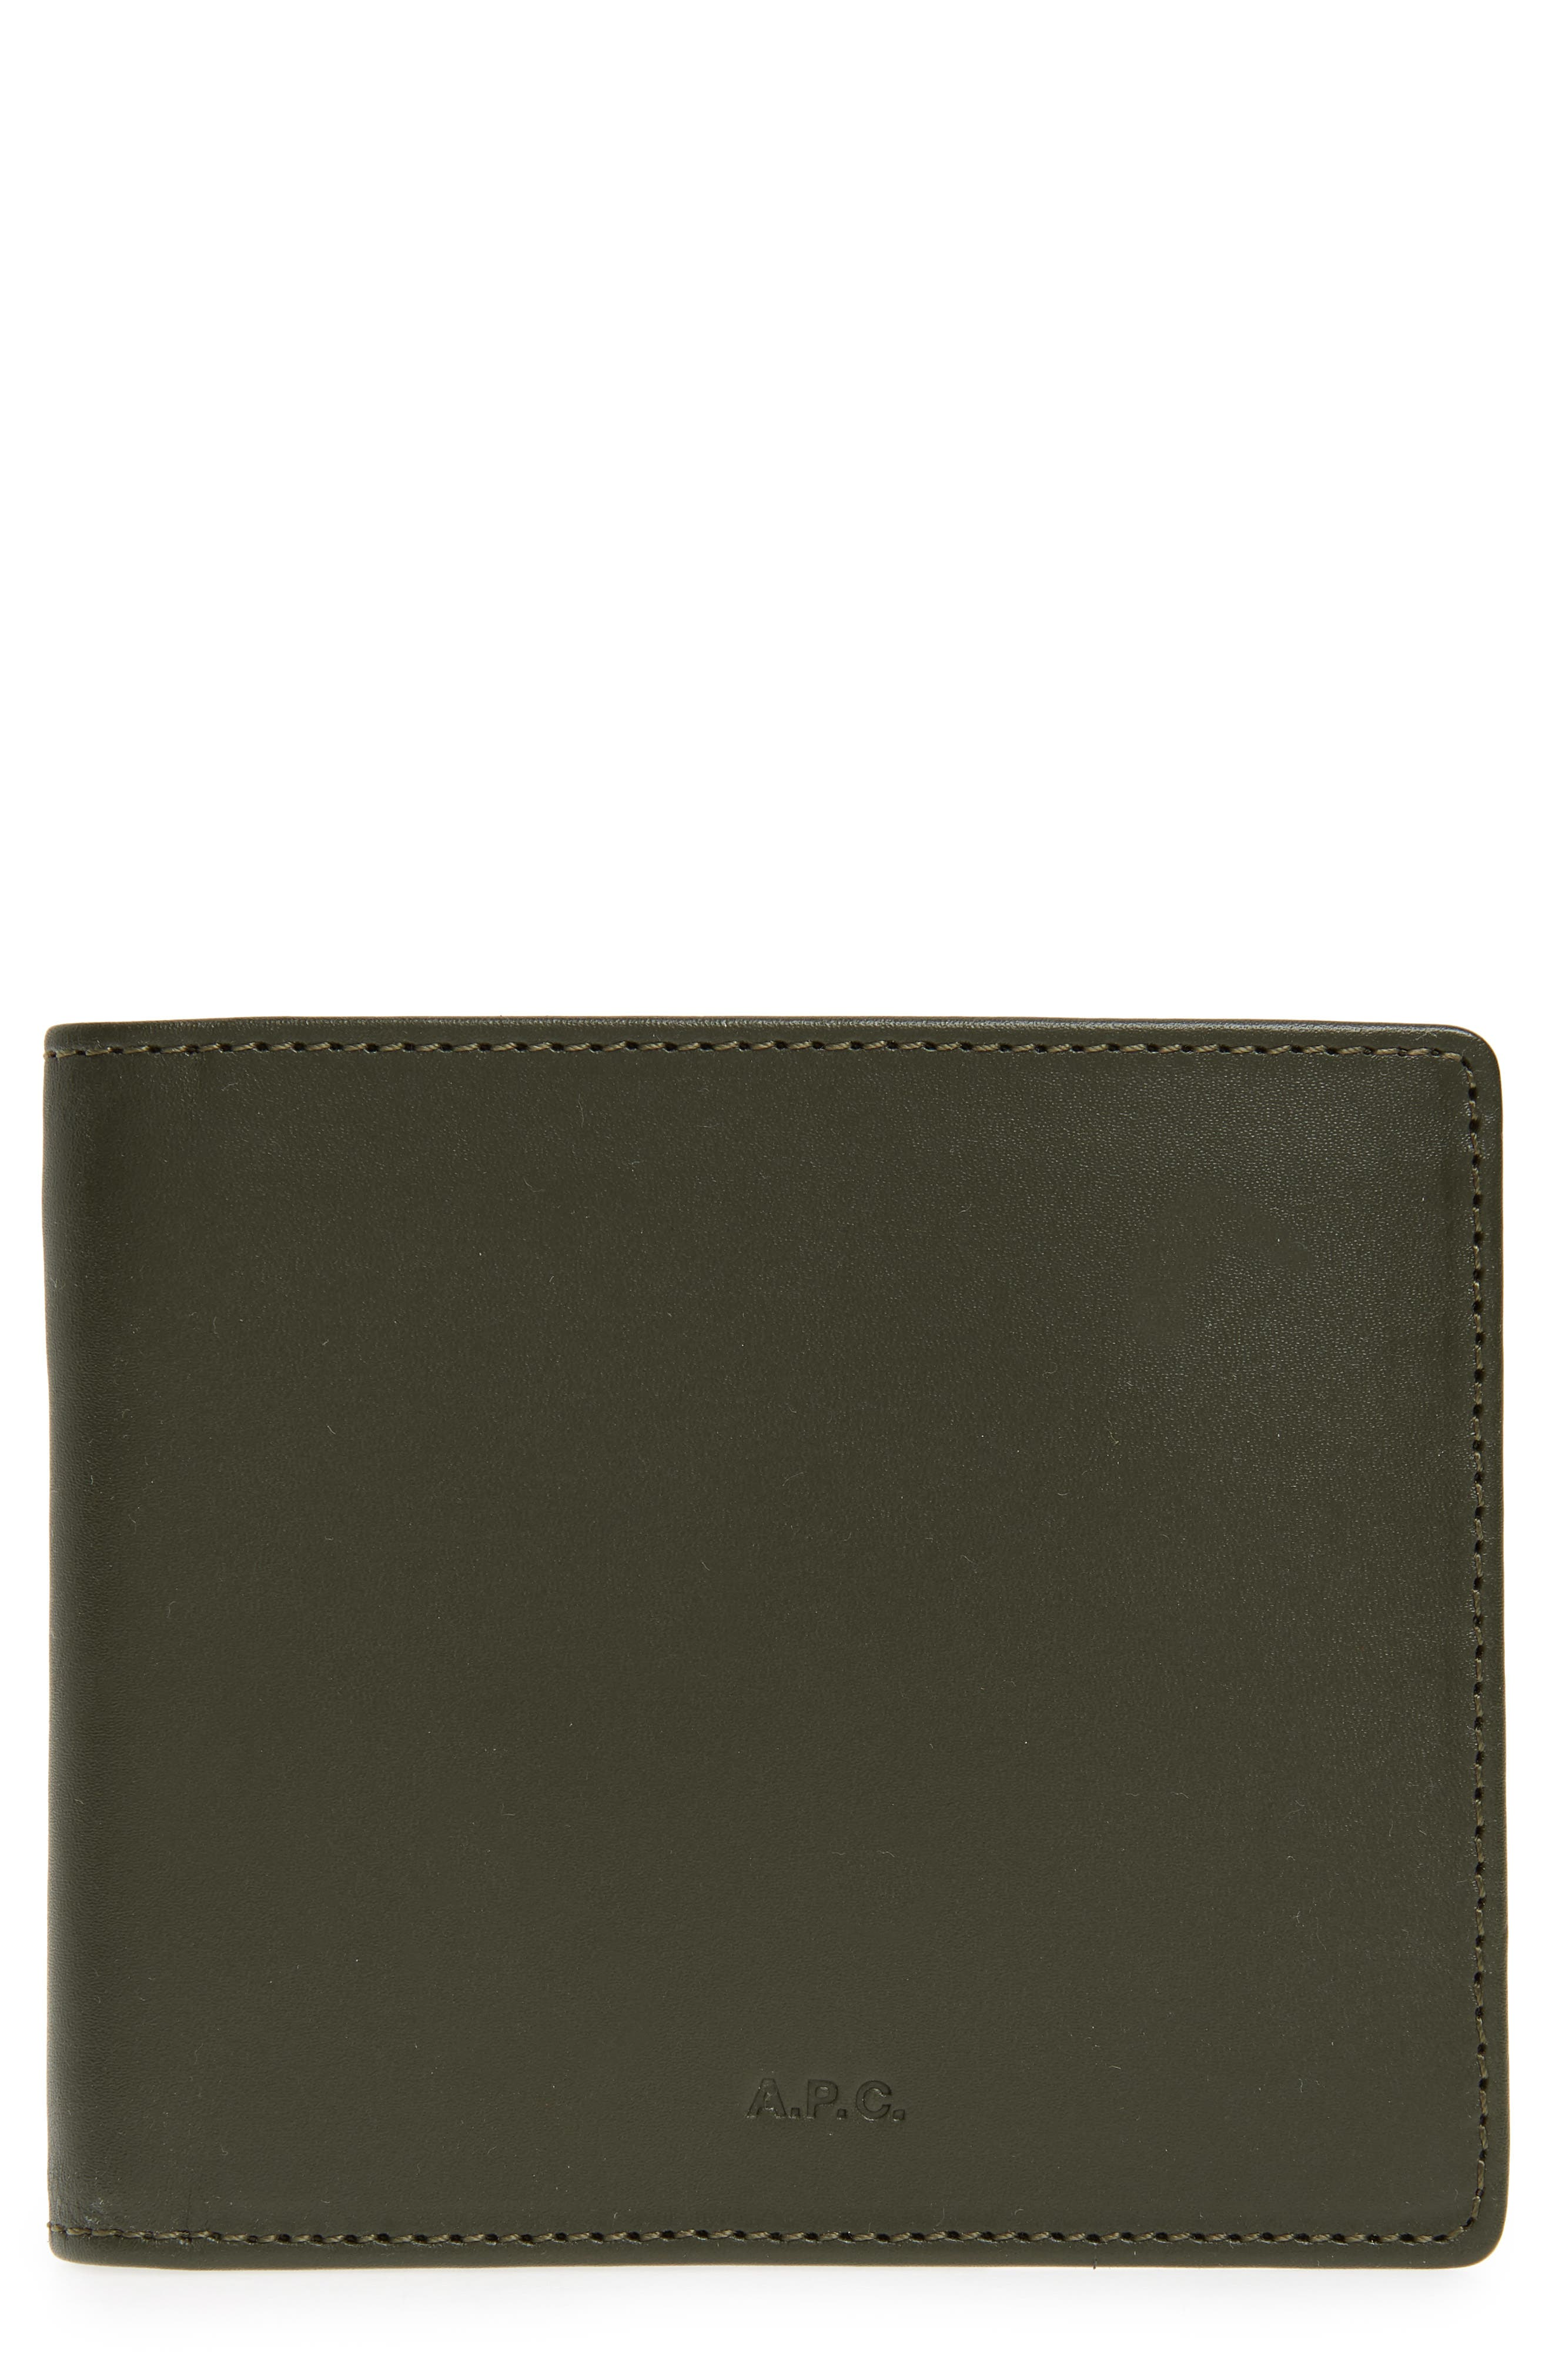 Aly Bifold Leather Wallet,                             Main thumbnail 1, color,                             Khaki